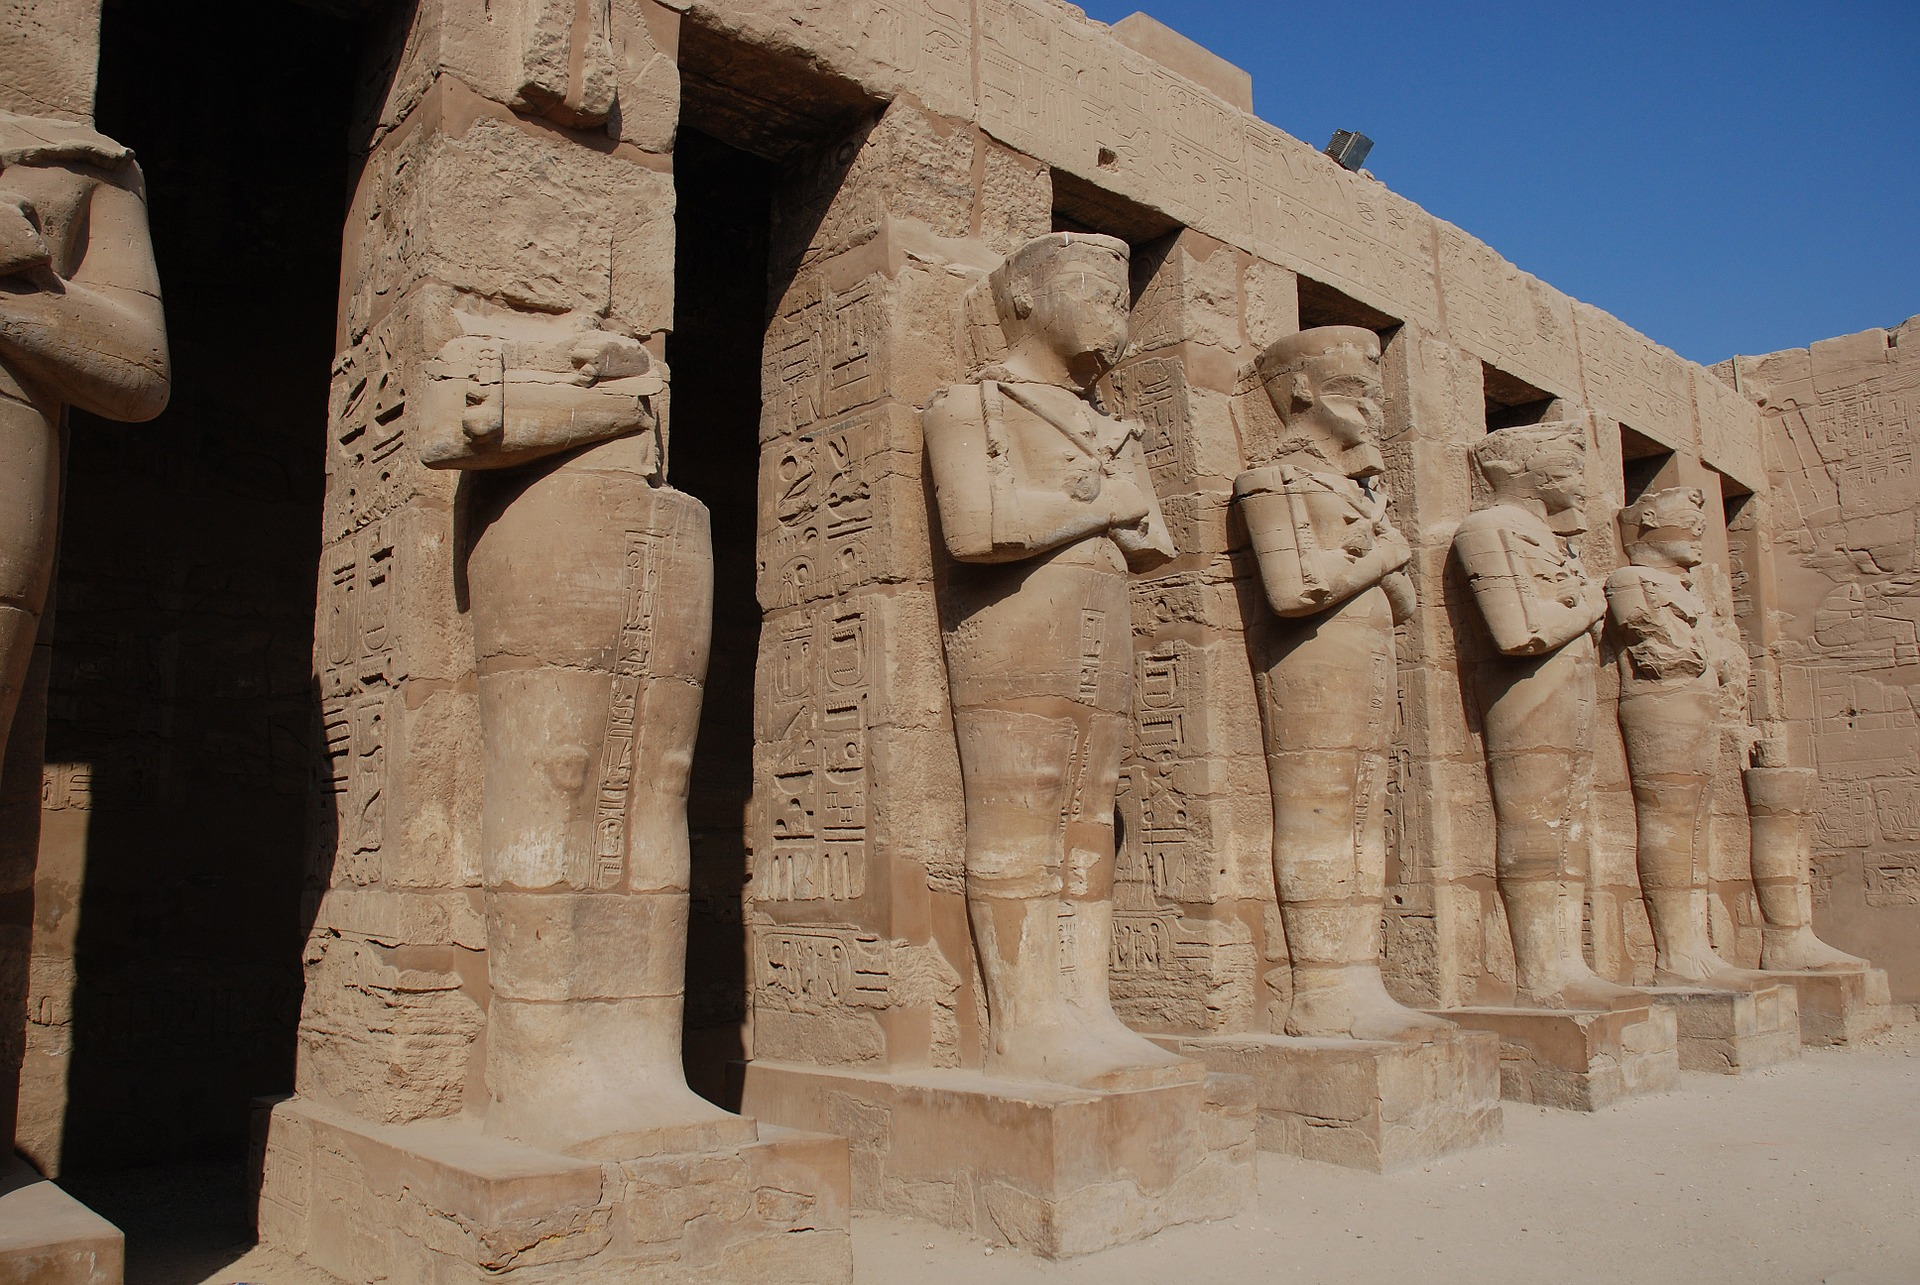 Splendours of Egypt | Temple Complex of Karnak, Luxor, Egypt